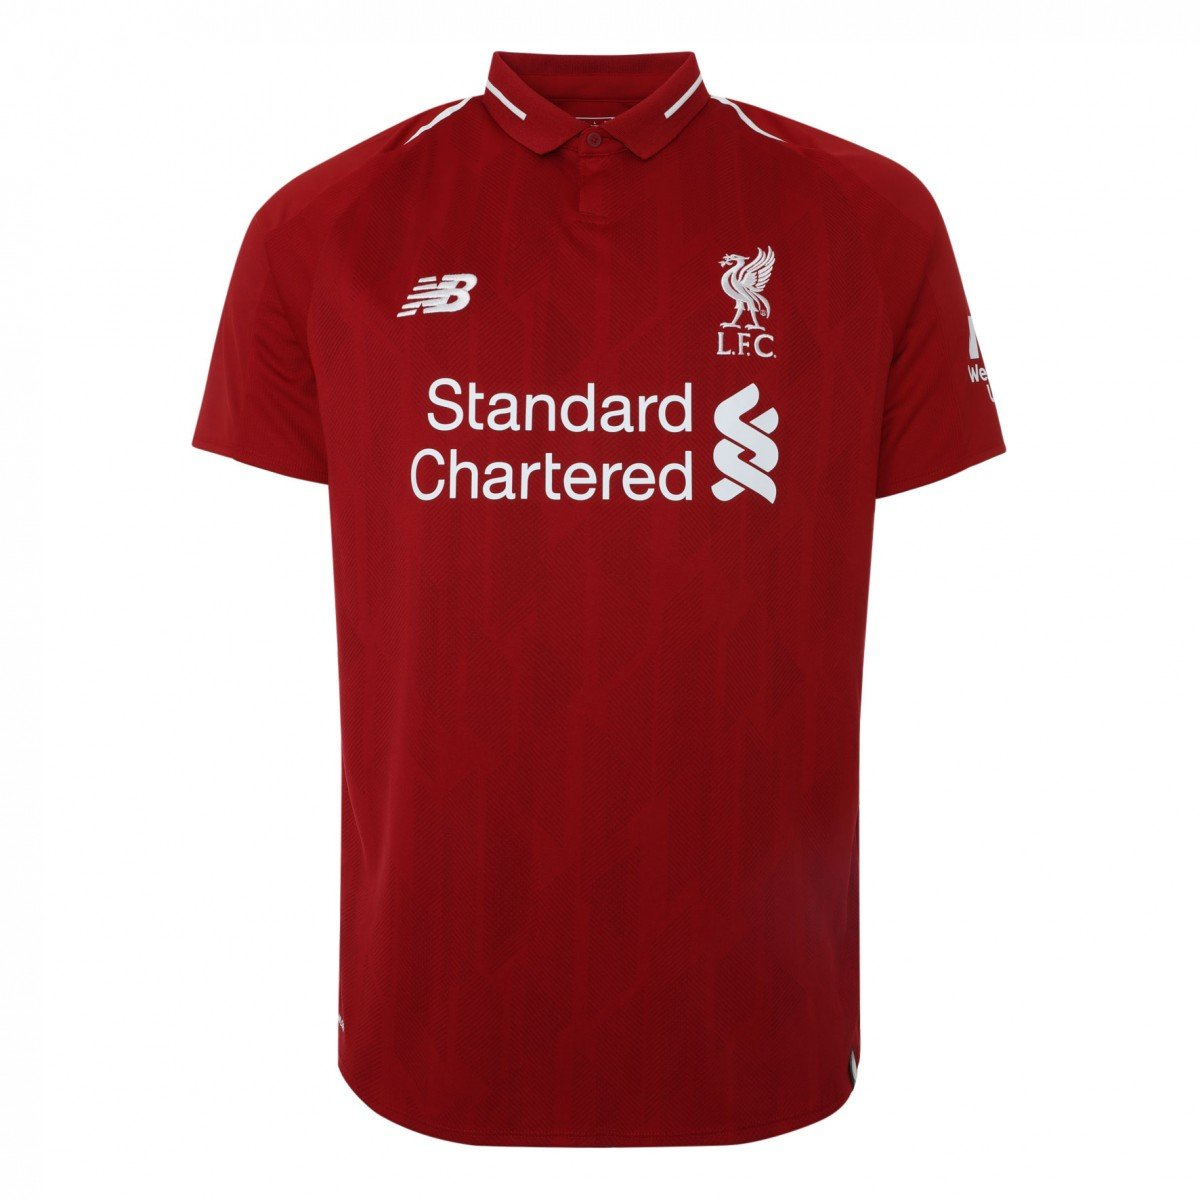 new product a0c21 500f8 2018-2019 Liverpool Home Football Soccer T-Shirt Jersey (Mohammad Salah 11)